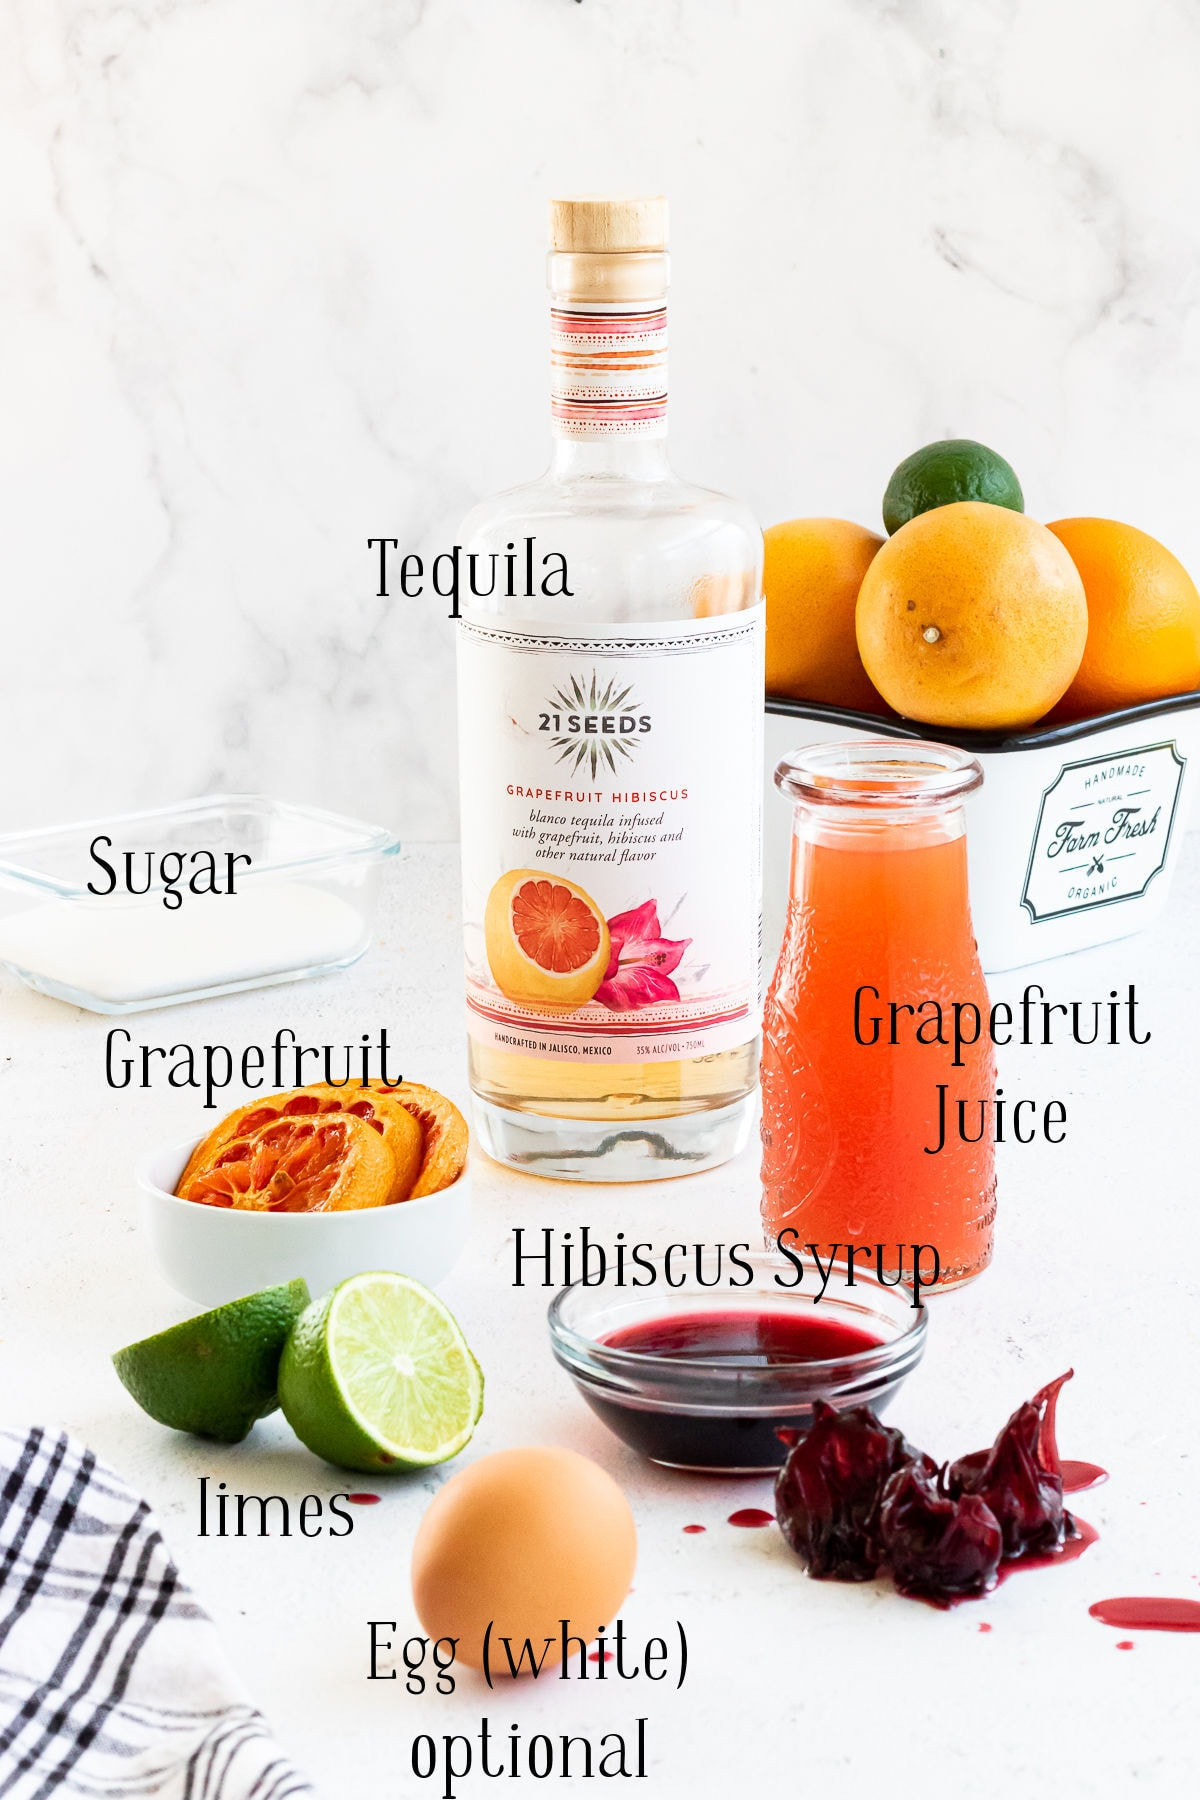 Labeled ingredients for the tequila sour.